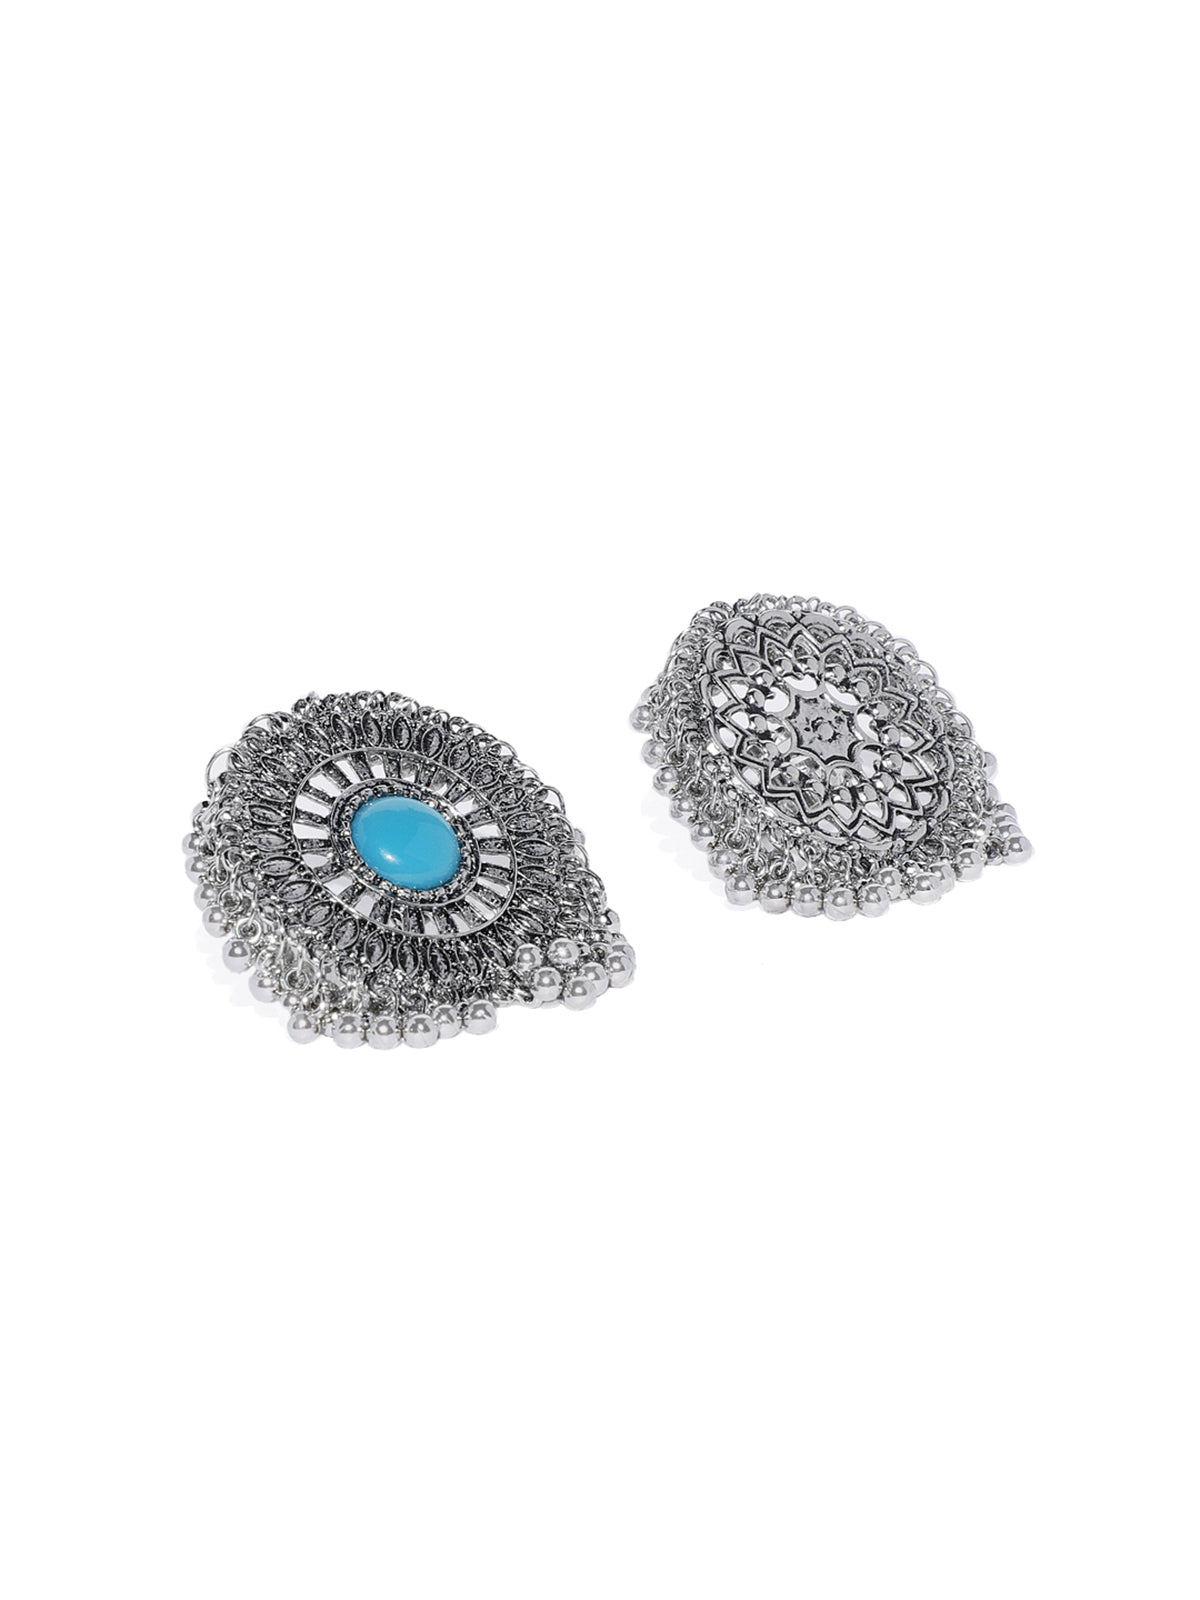 Combo Of 2 Zaveri Pearls Antique Silver Tone Beaded Traditional Finger Ring-ZAVERI PEARLS1-Finger Ring